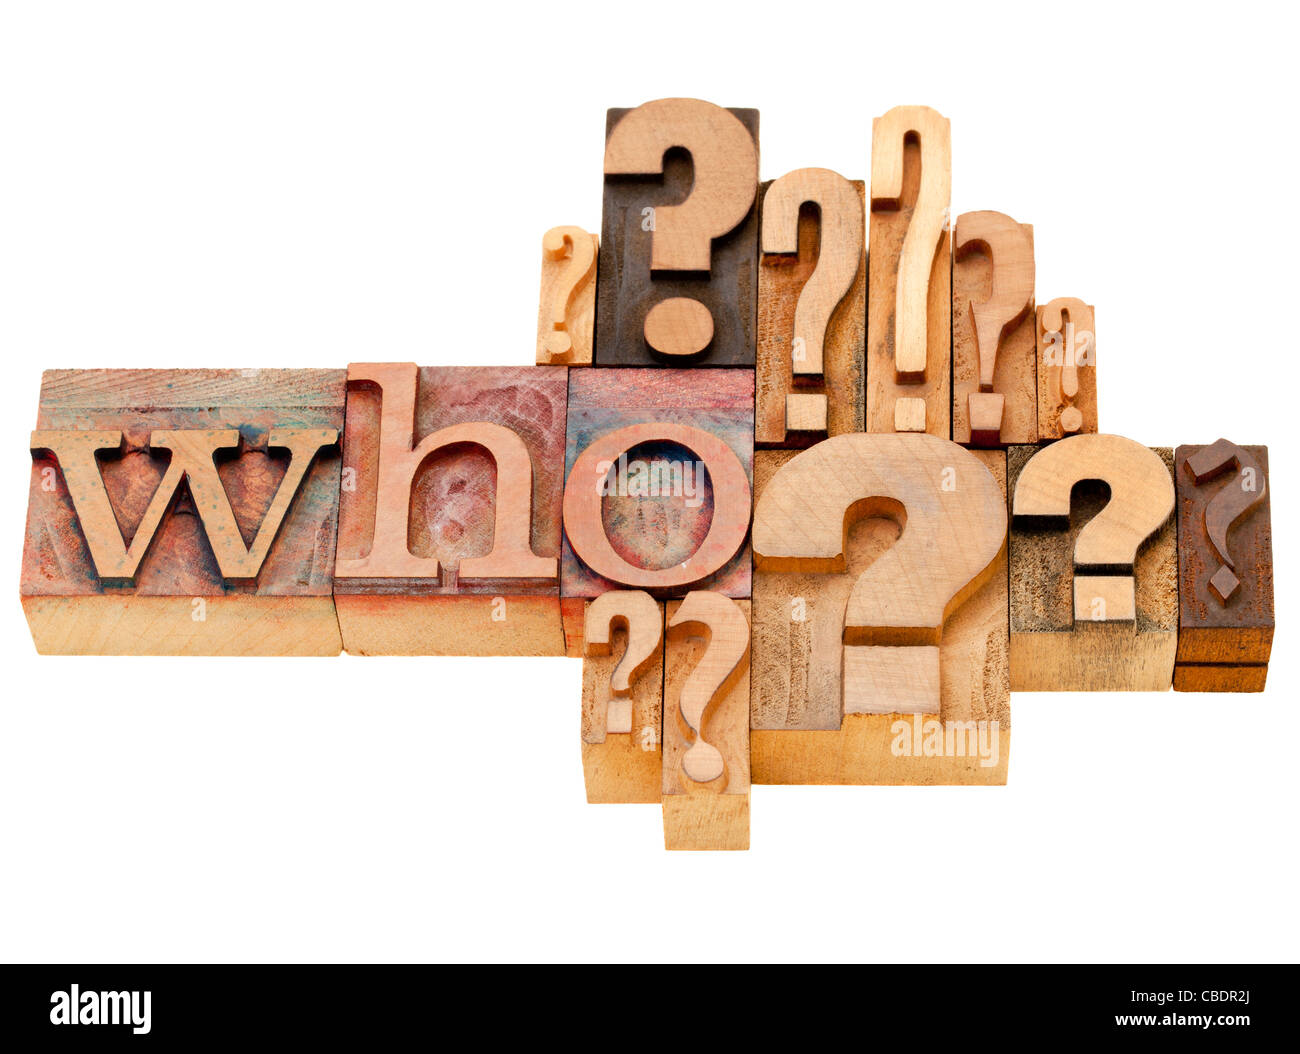 who question with multiple question marks - isolated vintage wood letterpress printing blocks - Stock Image